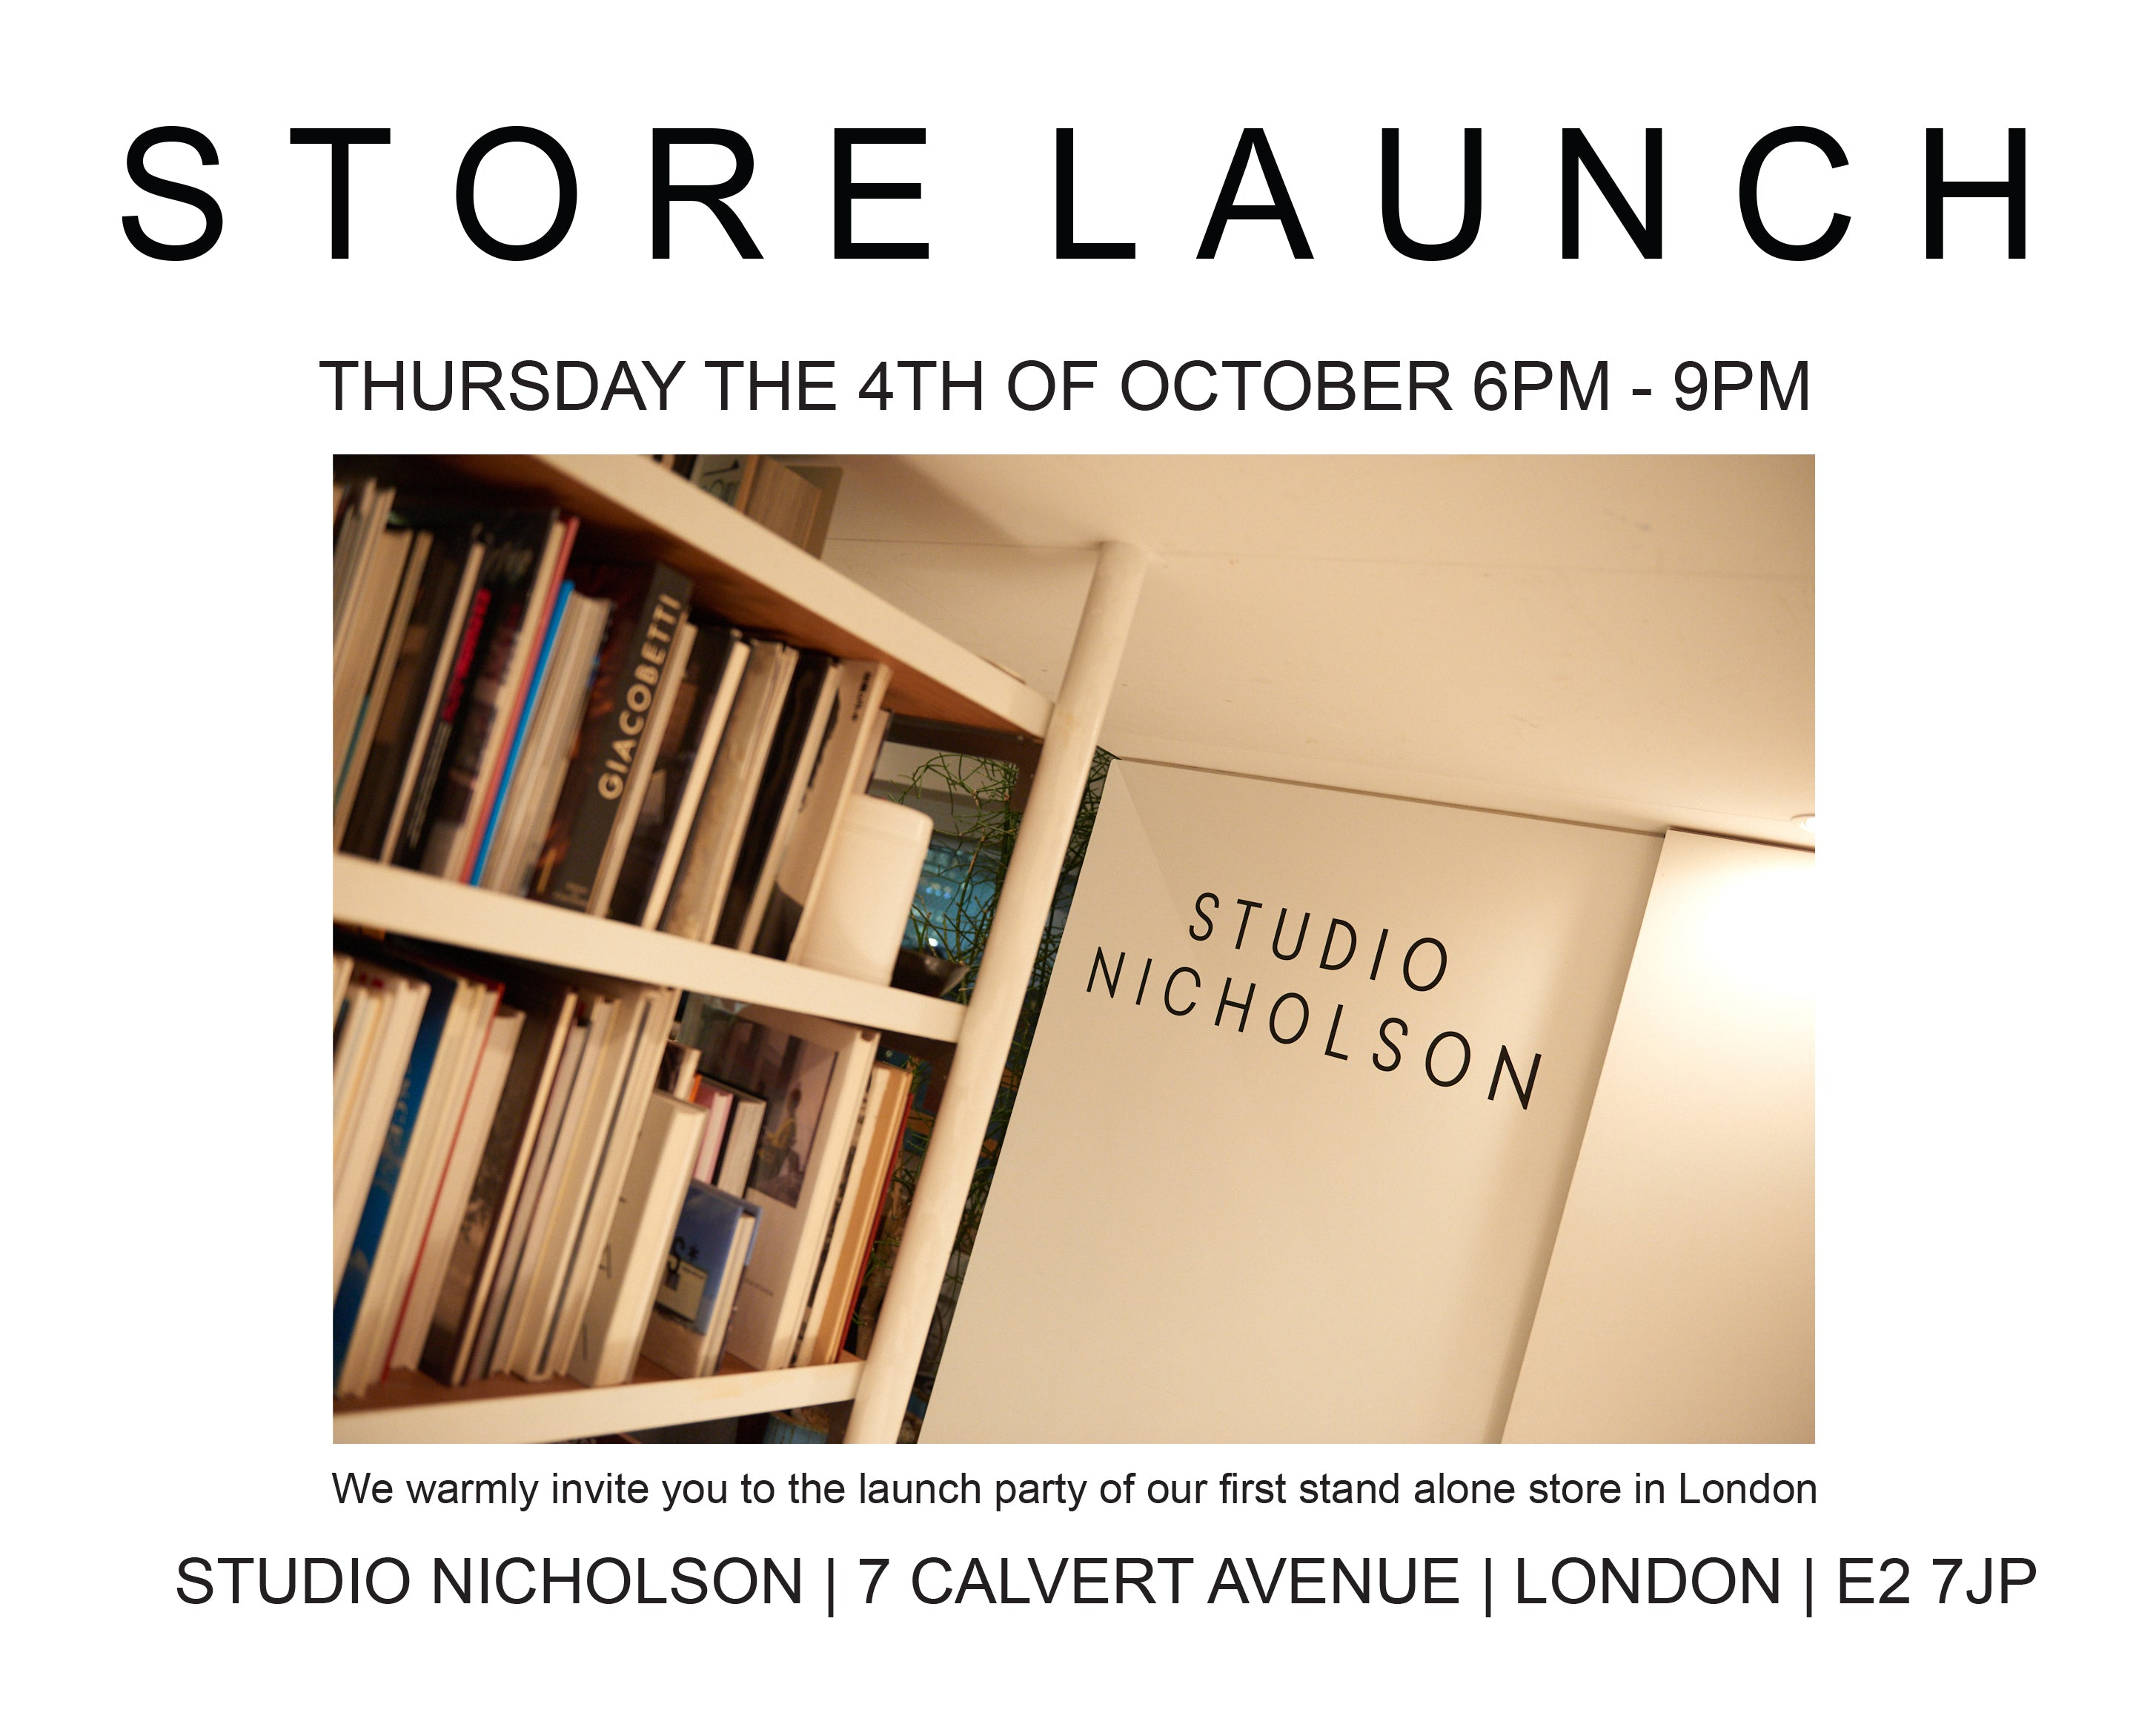 Store Launch - Thursday 4th October 6-9pm